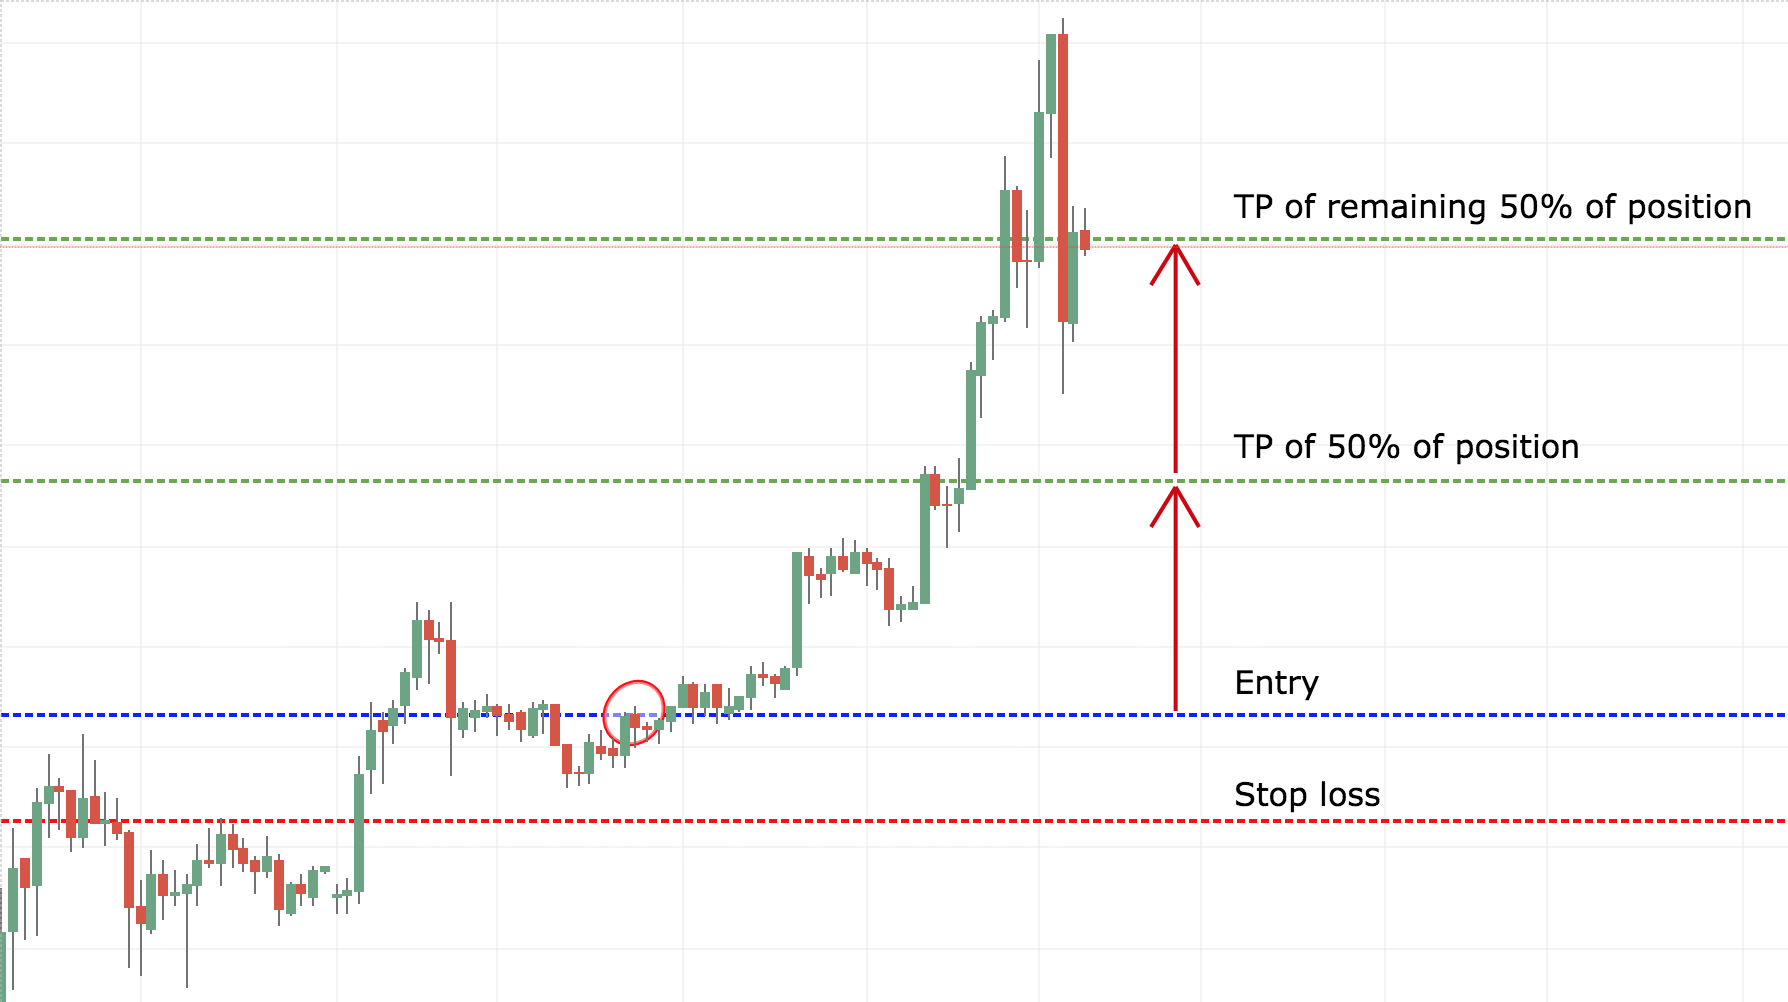 How to stop loss and take profit in forex